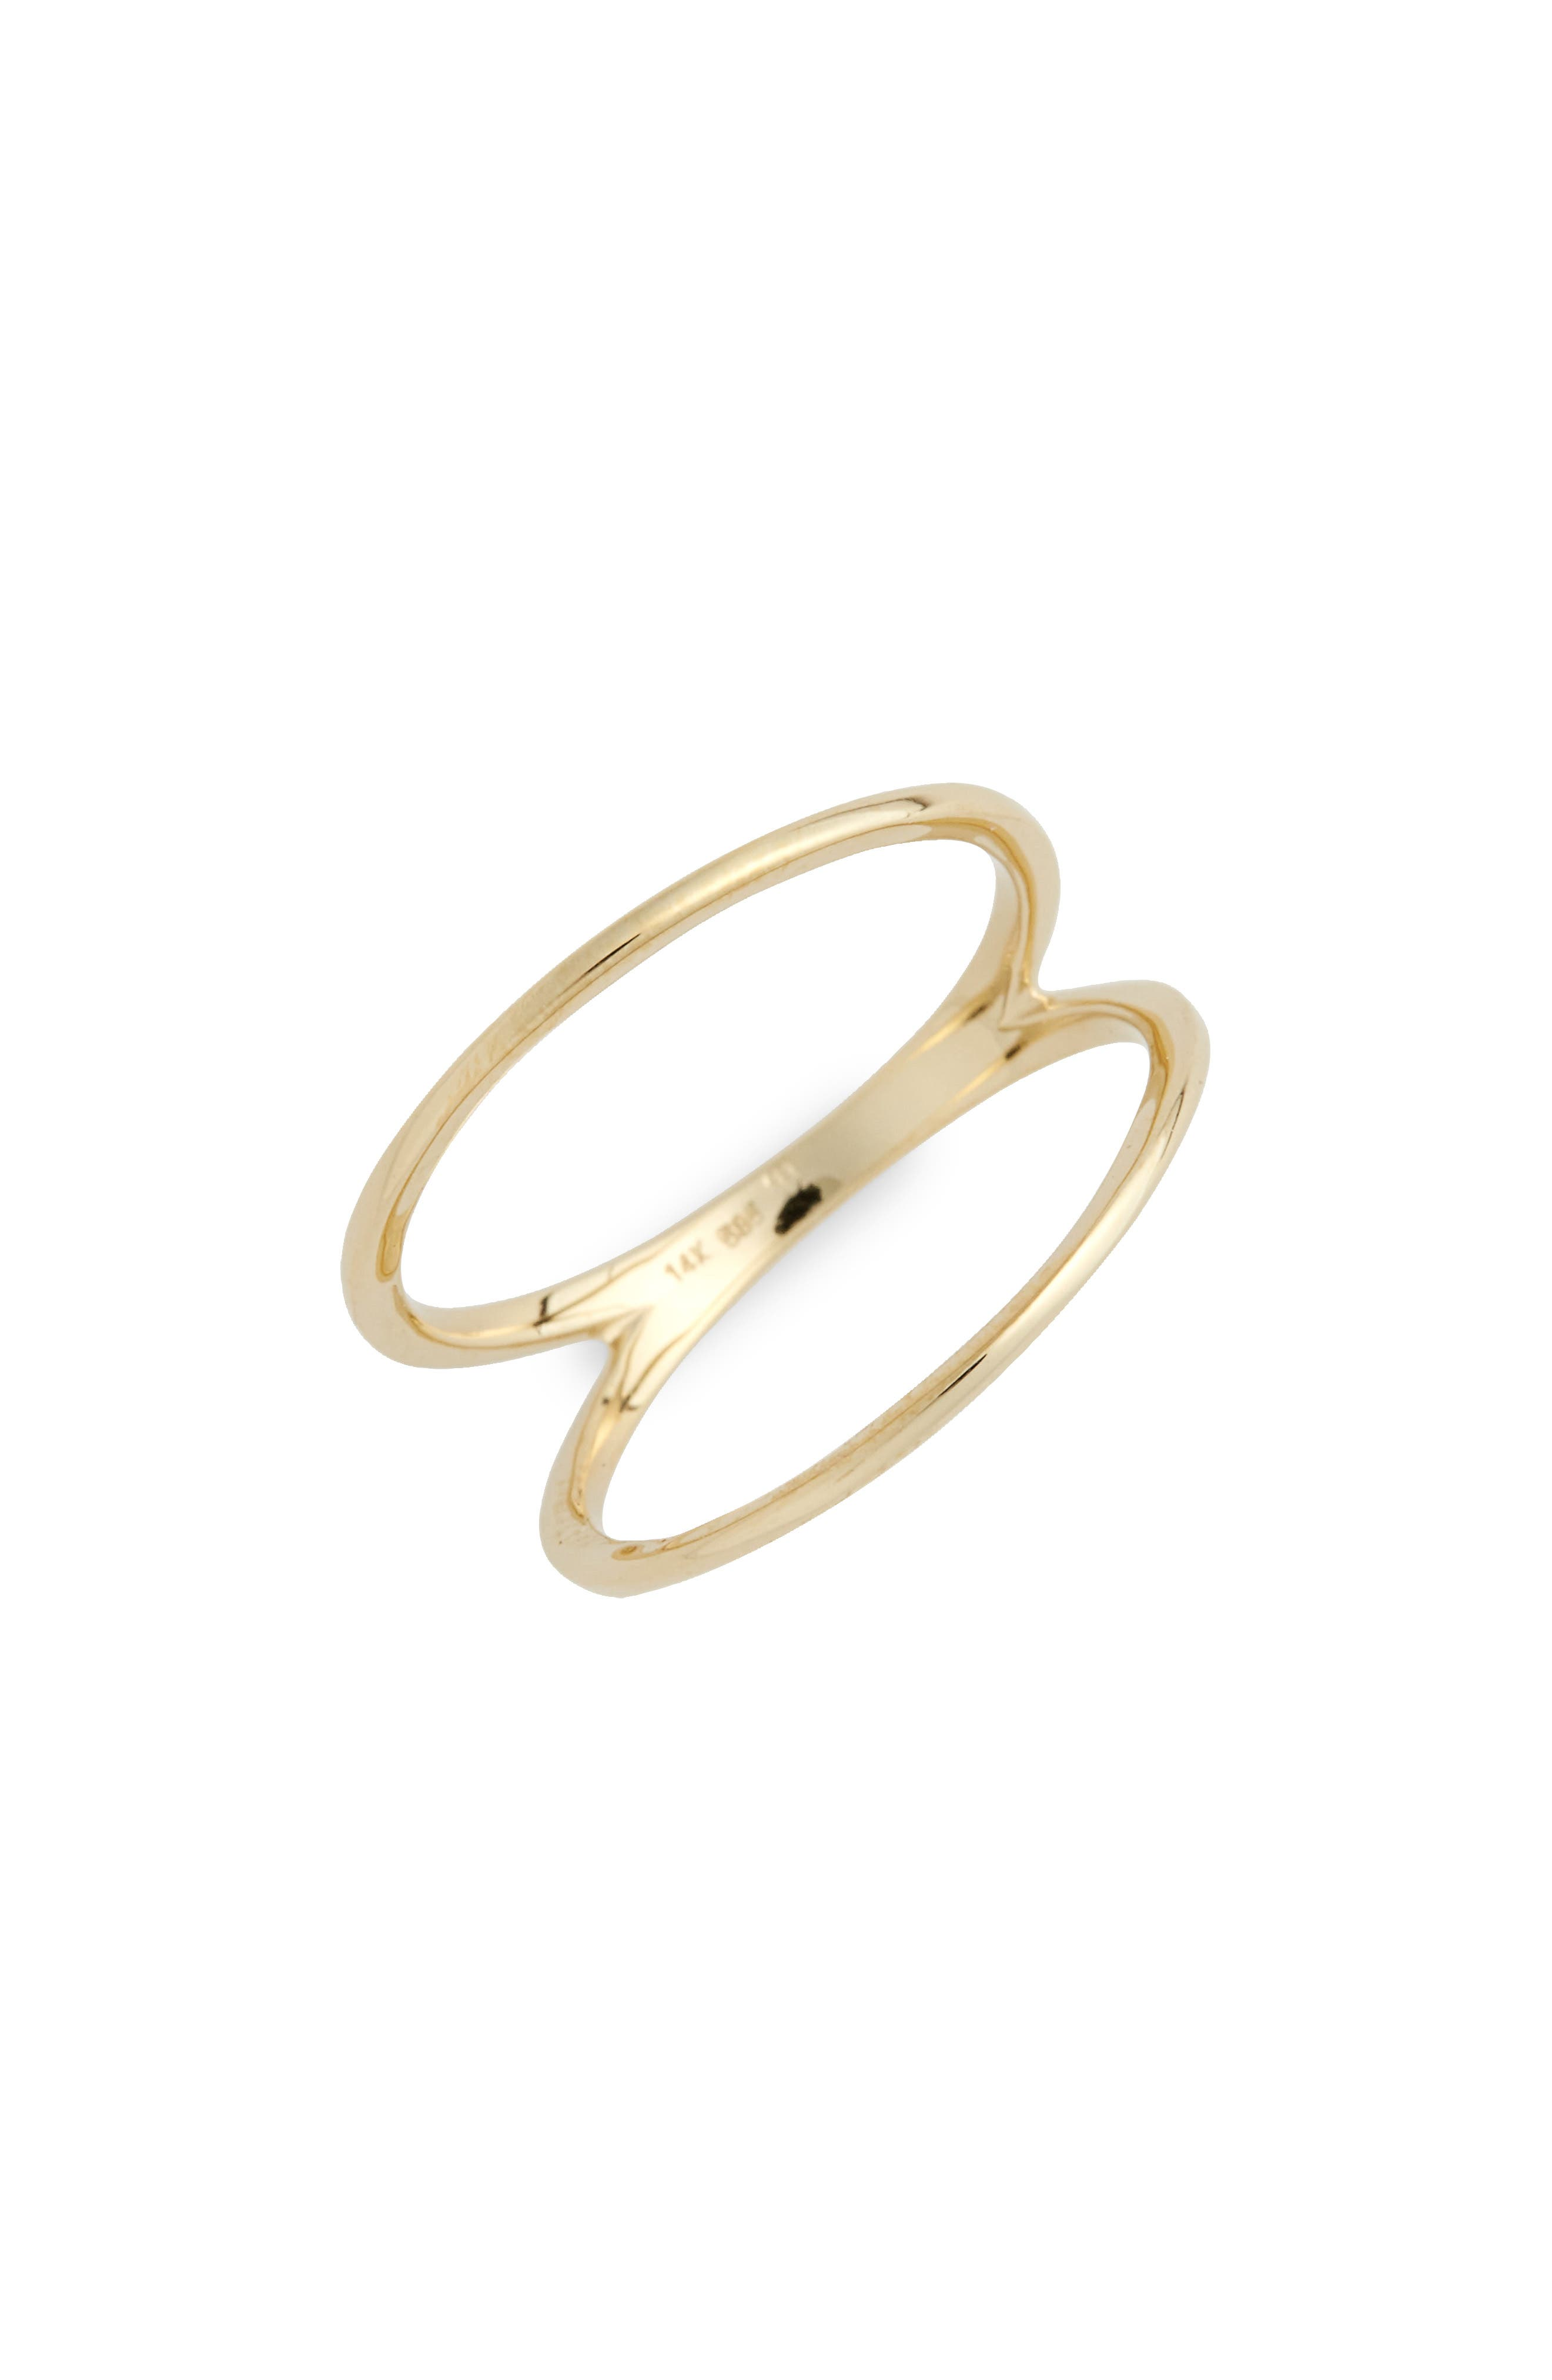 14KT Two Bar Ring,                         Main,                         color, YELLOW GOLD